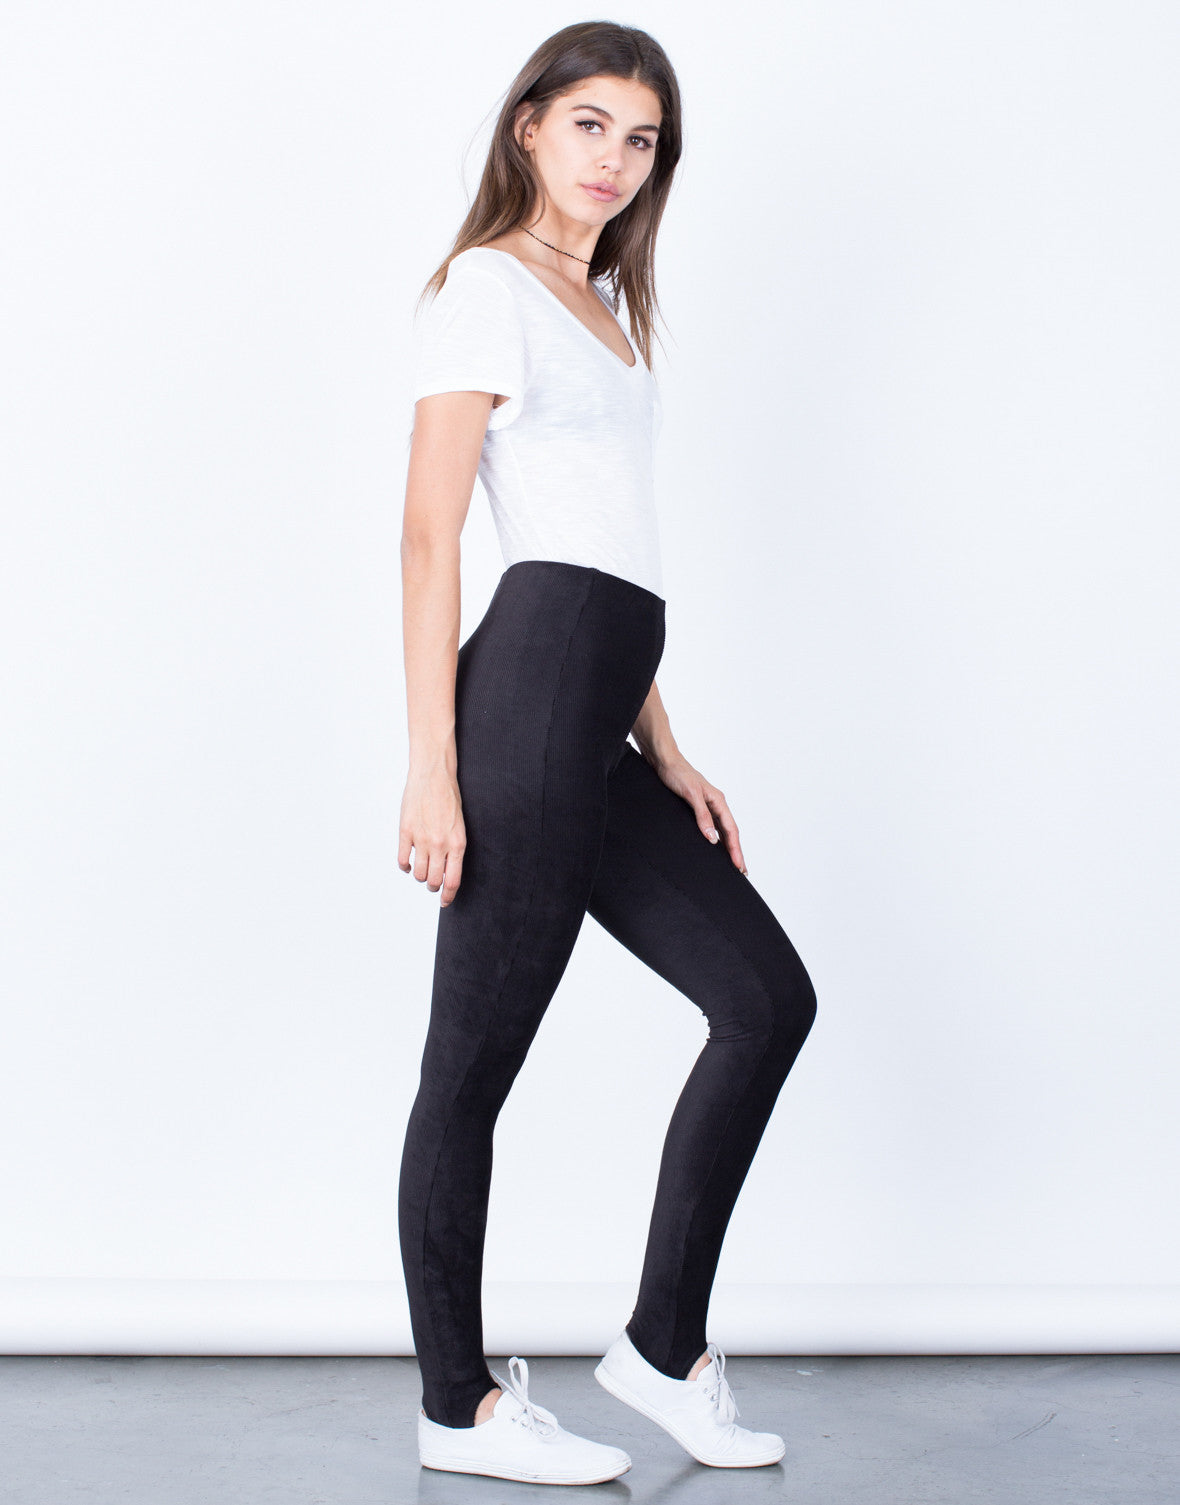 Completely new Corduroy Stirrup Leggings - Black Corduroy Leggings - Black Basic  MJ21